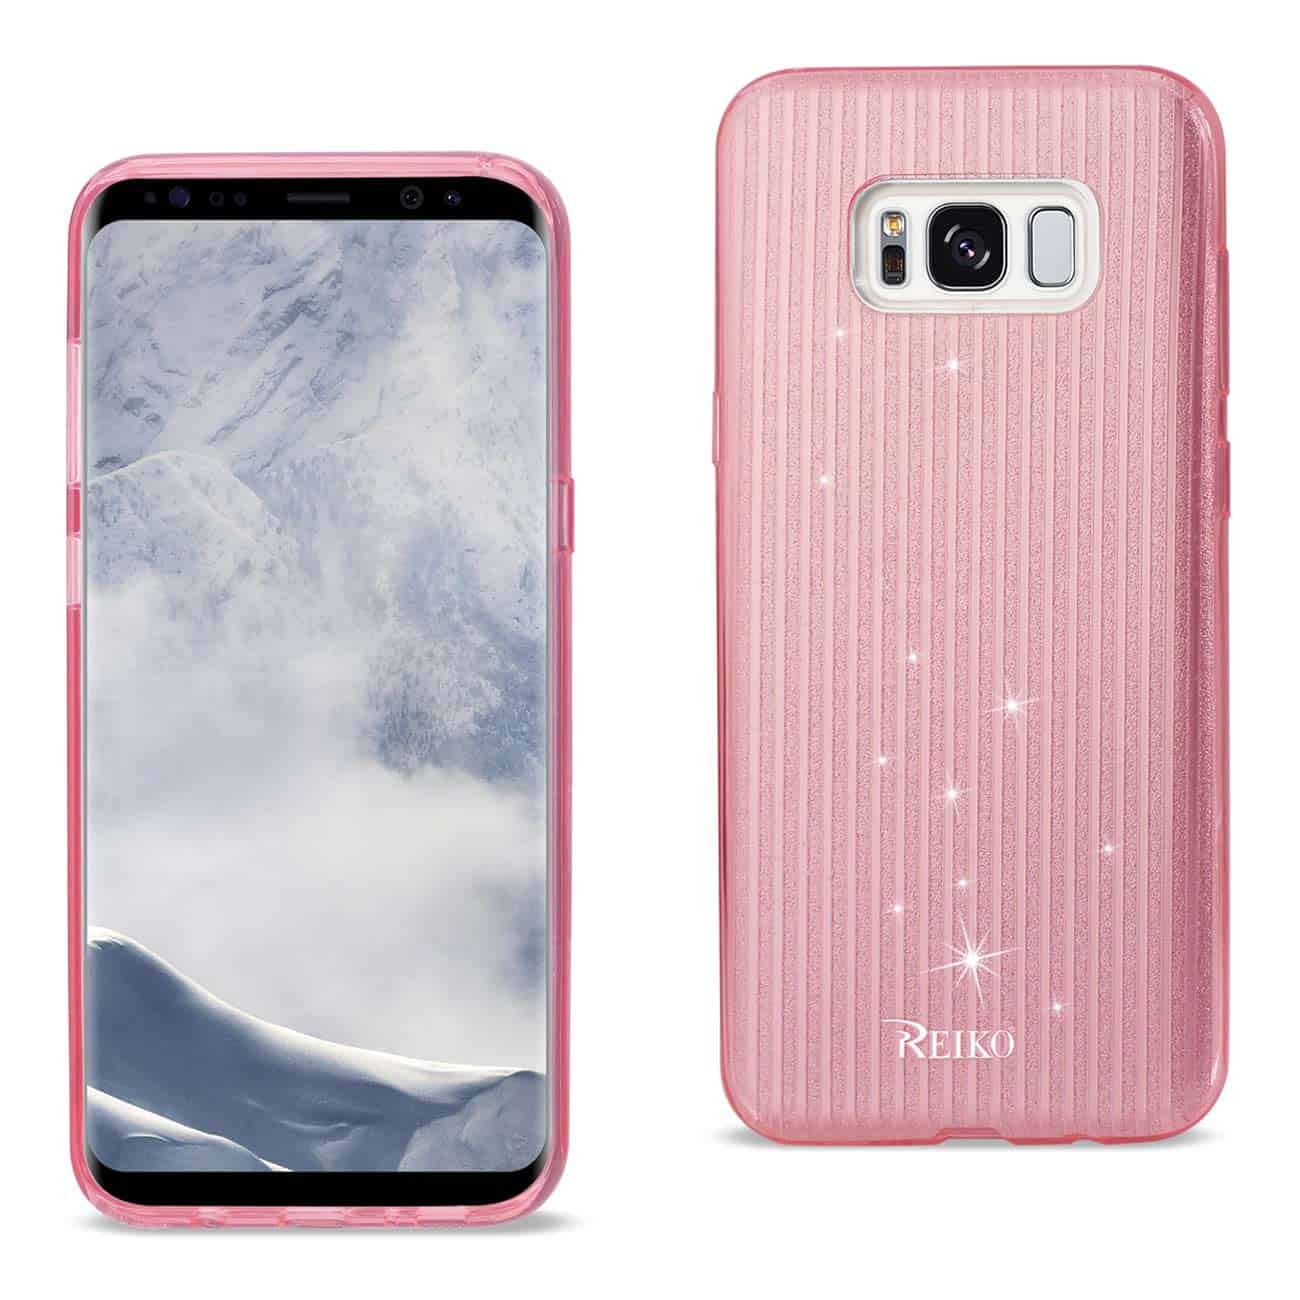 SAMSUNG GALAXY S8 EDGE/ S8 PLUS SHINE GLITTER SHIMMER STRIPE HYBRID CASE IN LINEAR PINK